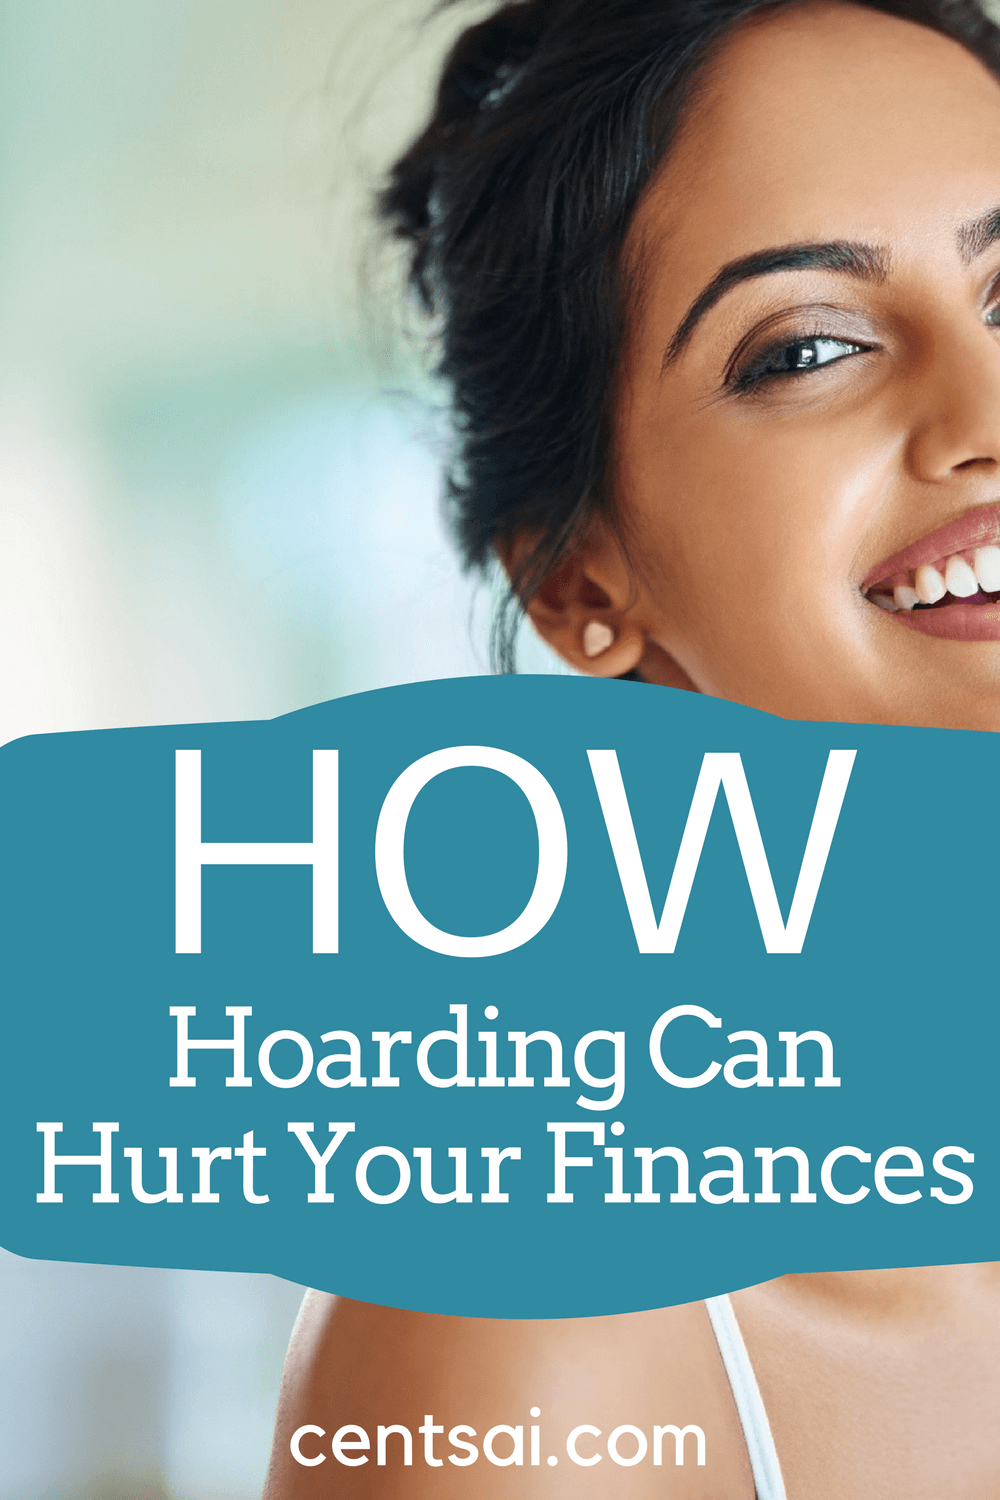 How Hoarding Can Hurt Your Finances. Begin by understanding that hoarders aren't just being lazy - they may be dealing with all sorts of issues. But how can you help them?